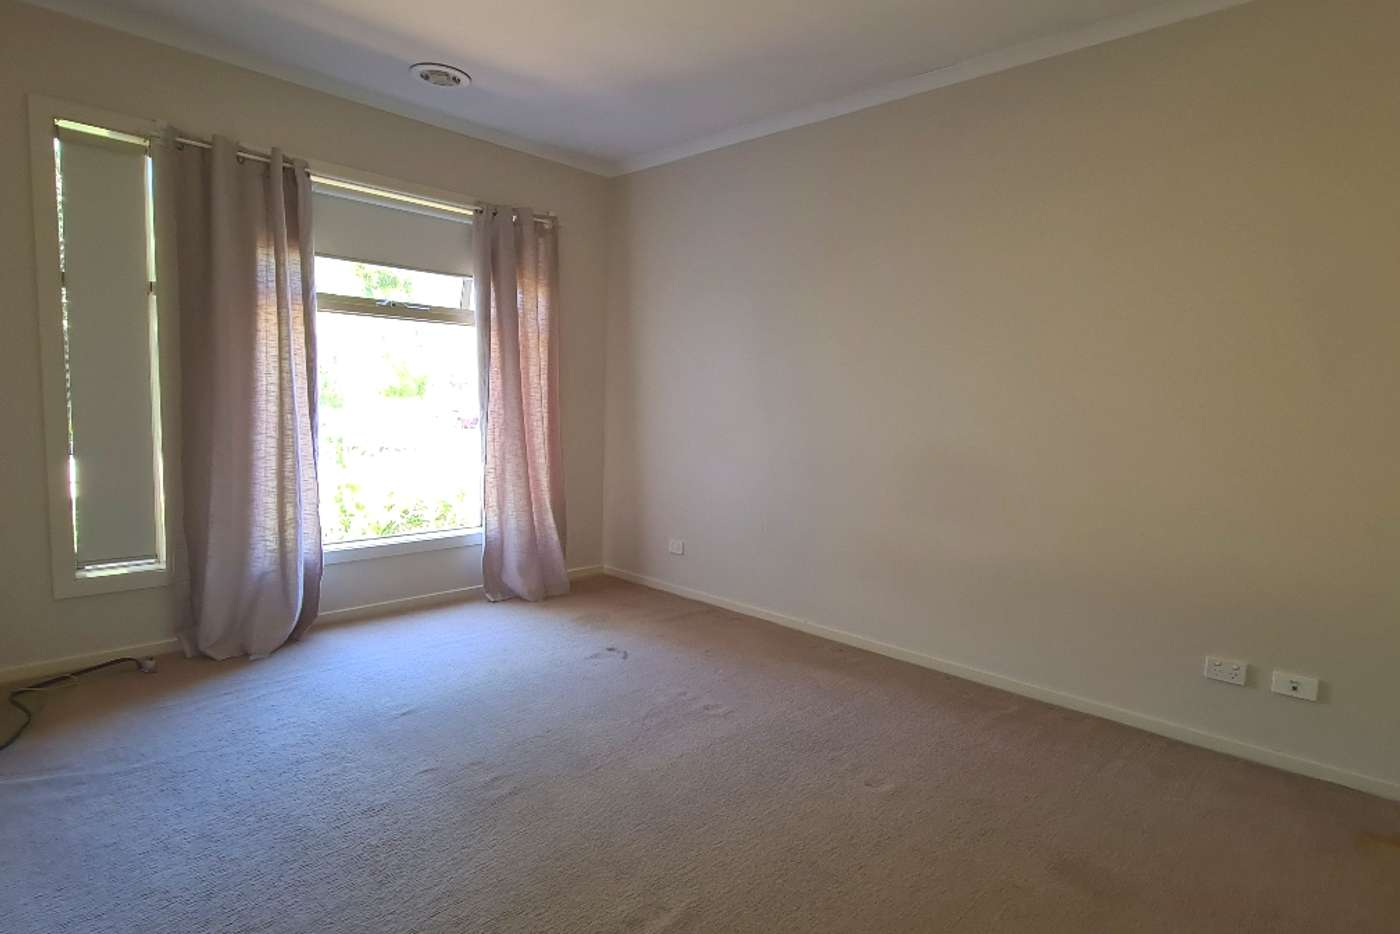 Seventh view of Homely house listing, 1 Darter Court, Lara VIC 3212